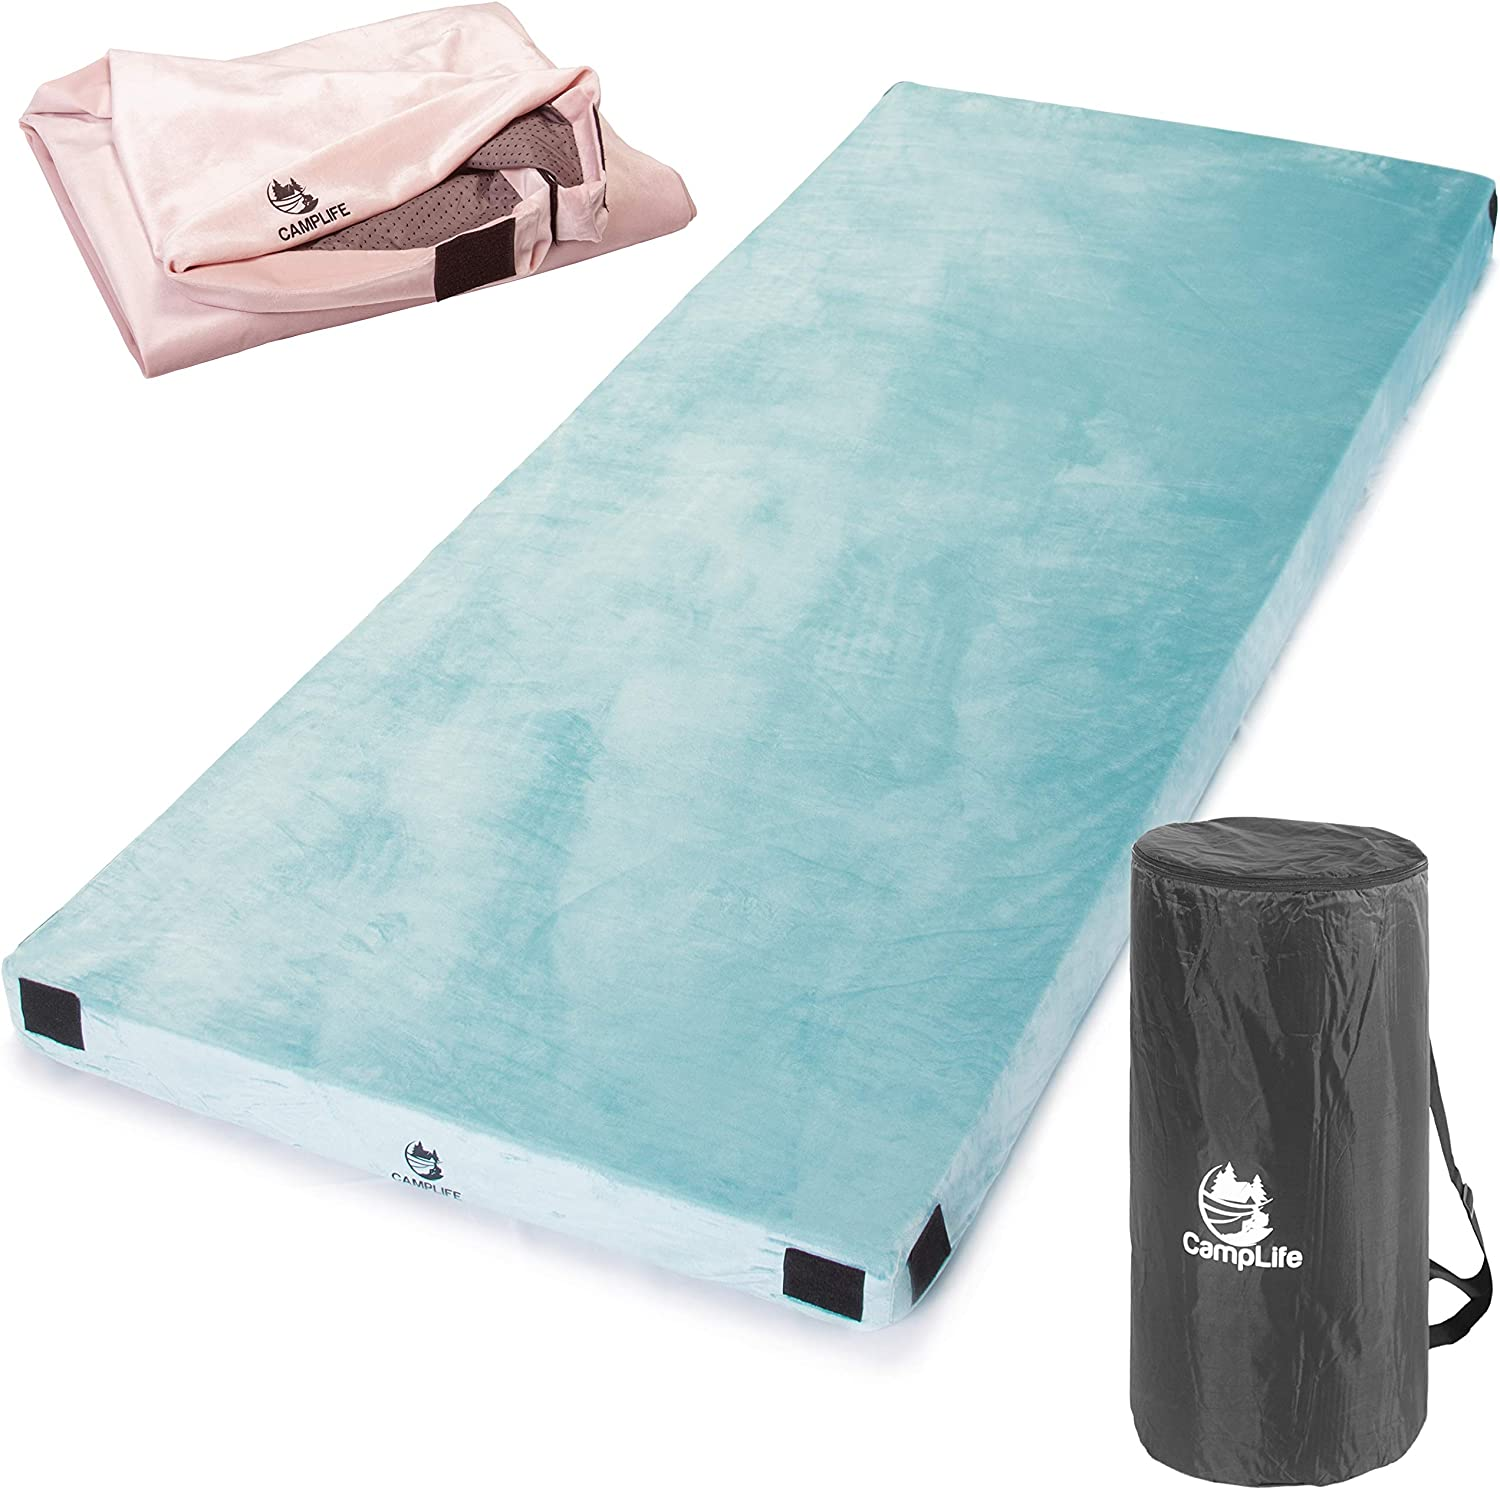 Camplife Low price Certipur-US Outlet ☆ Free Shipping Memory Foam Sleeping Comforta Most Mattress